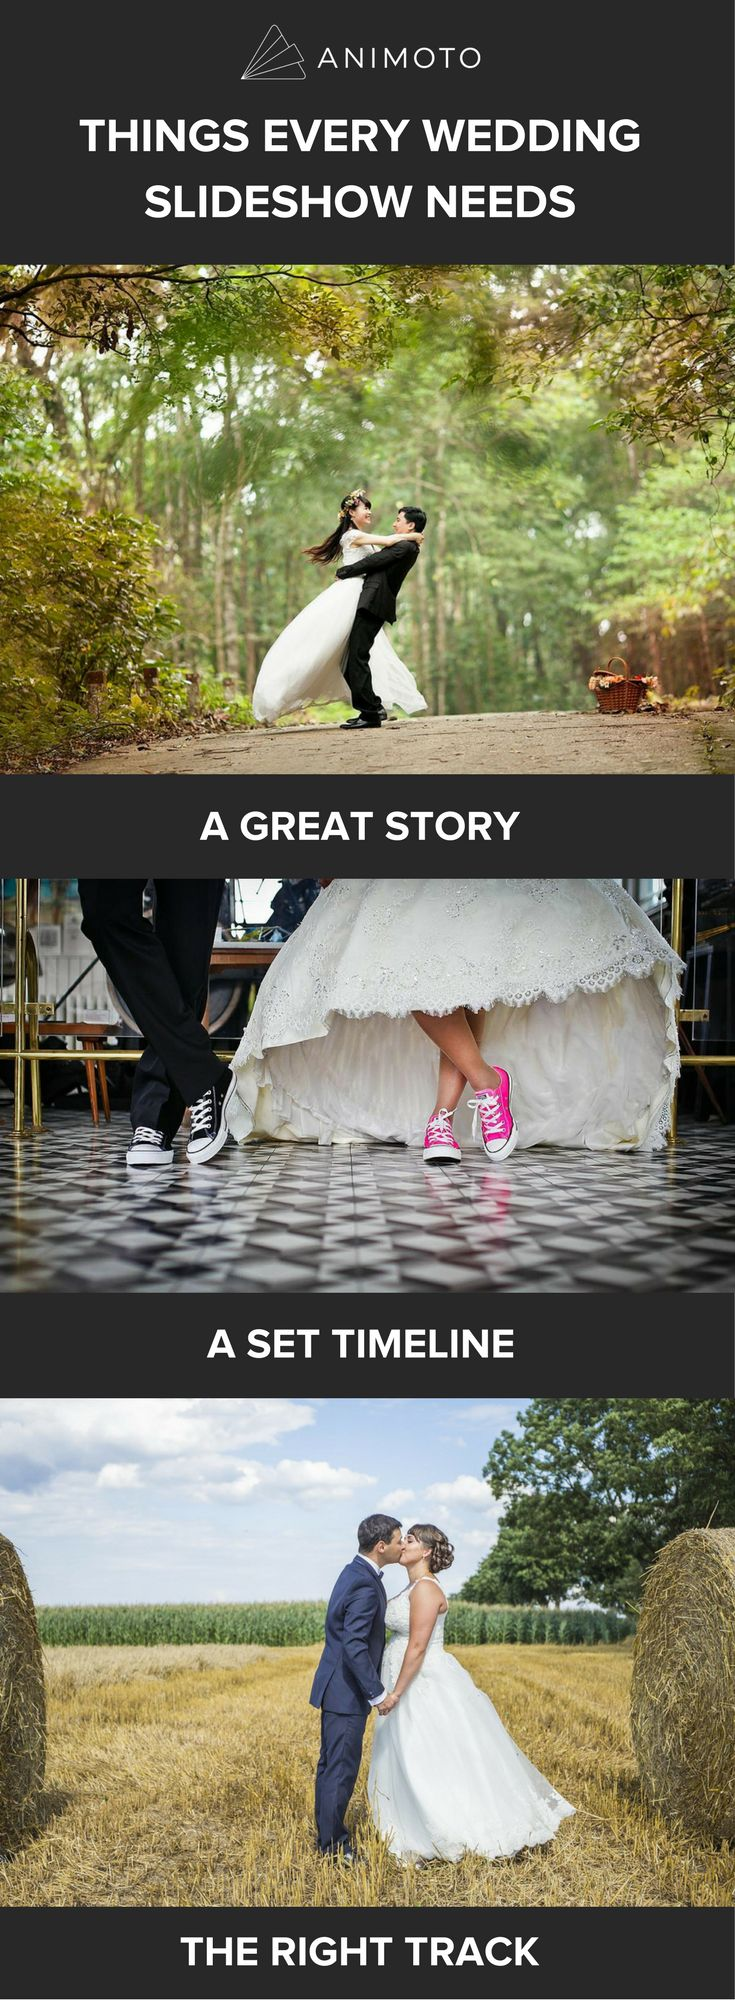 A wedding slideshow is a simple, elegant way to share your story with the people who mean the most to you. To help you tell your own love story, we've put together a guide that'll take you through making a wedding slideshow with music, step by step.